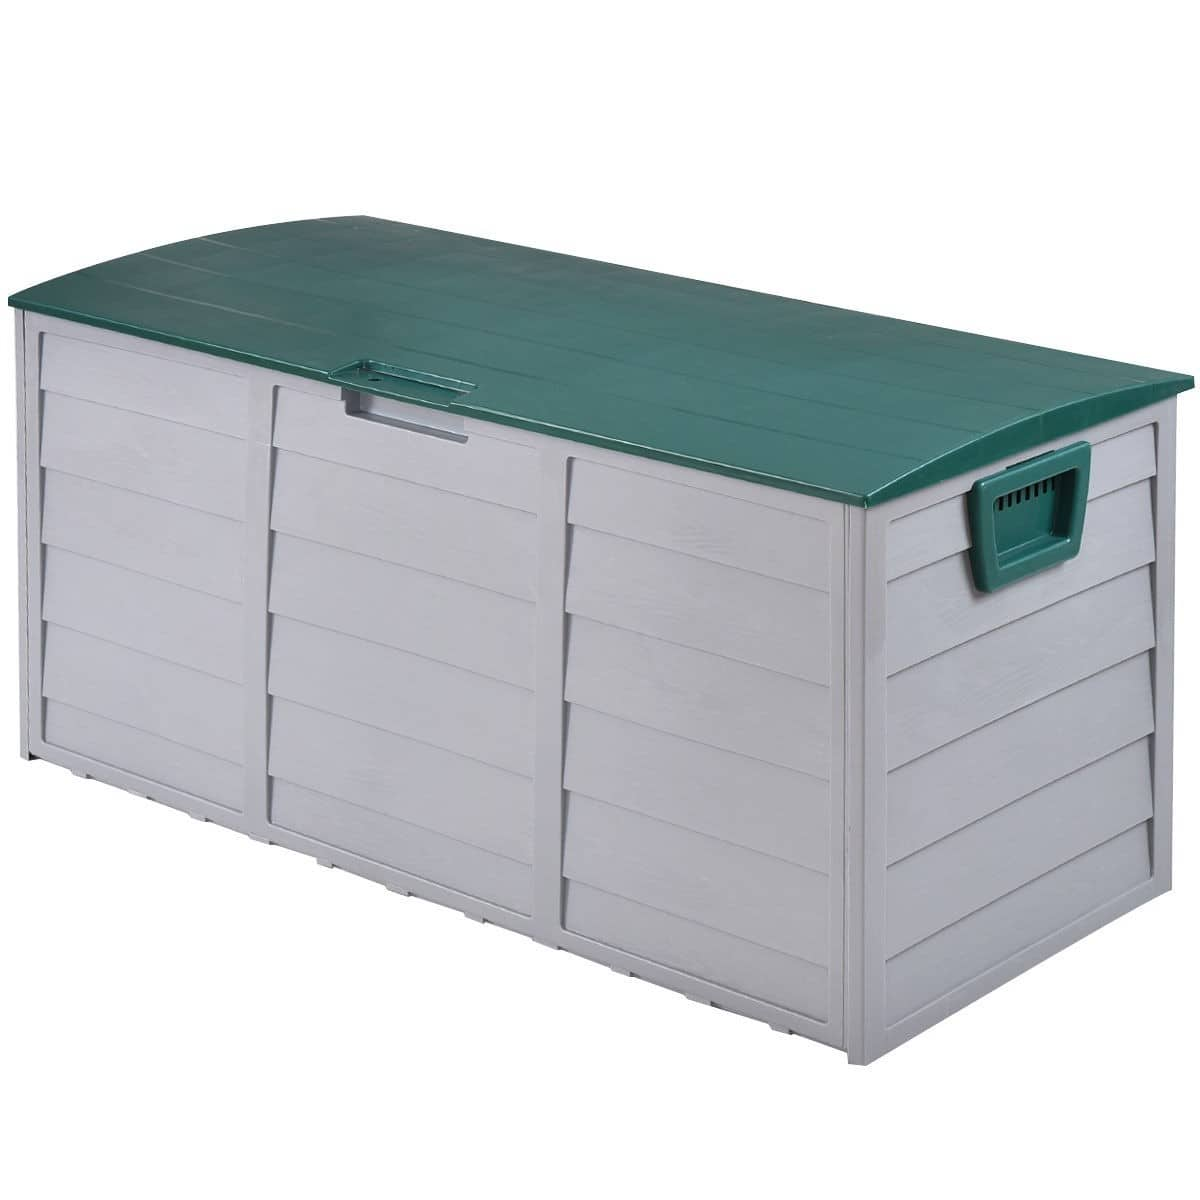 Costway 70 Gallon Outdoor Deck Storage Box $42.95 + Free Shipping